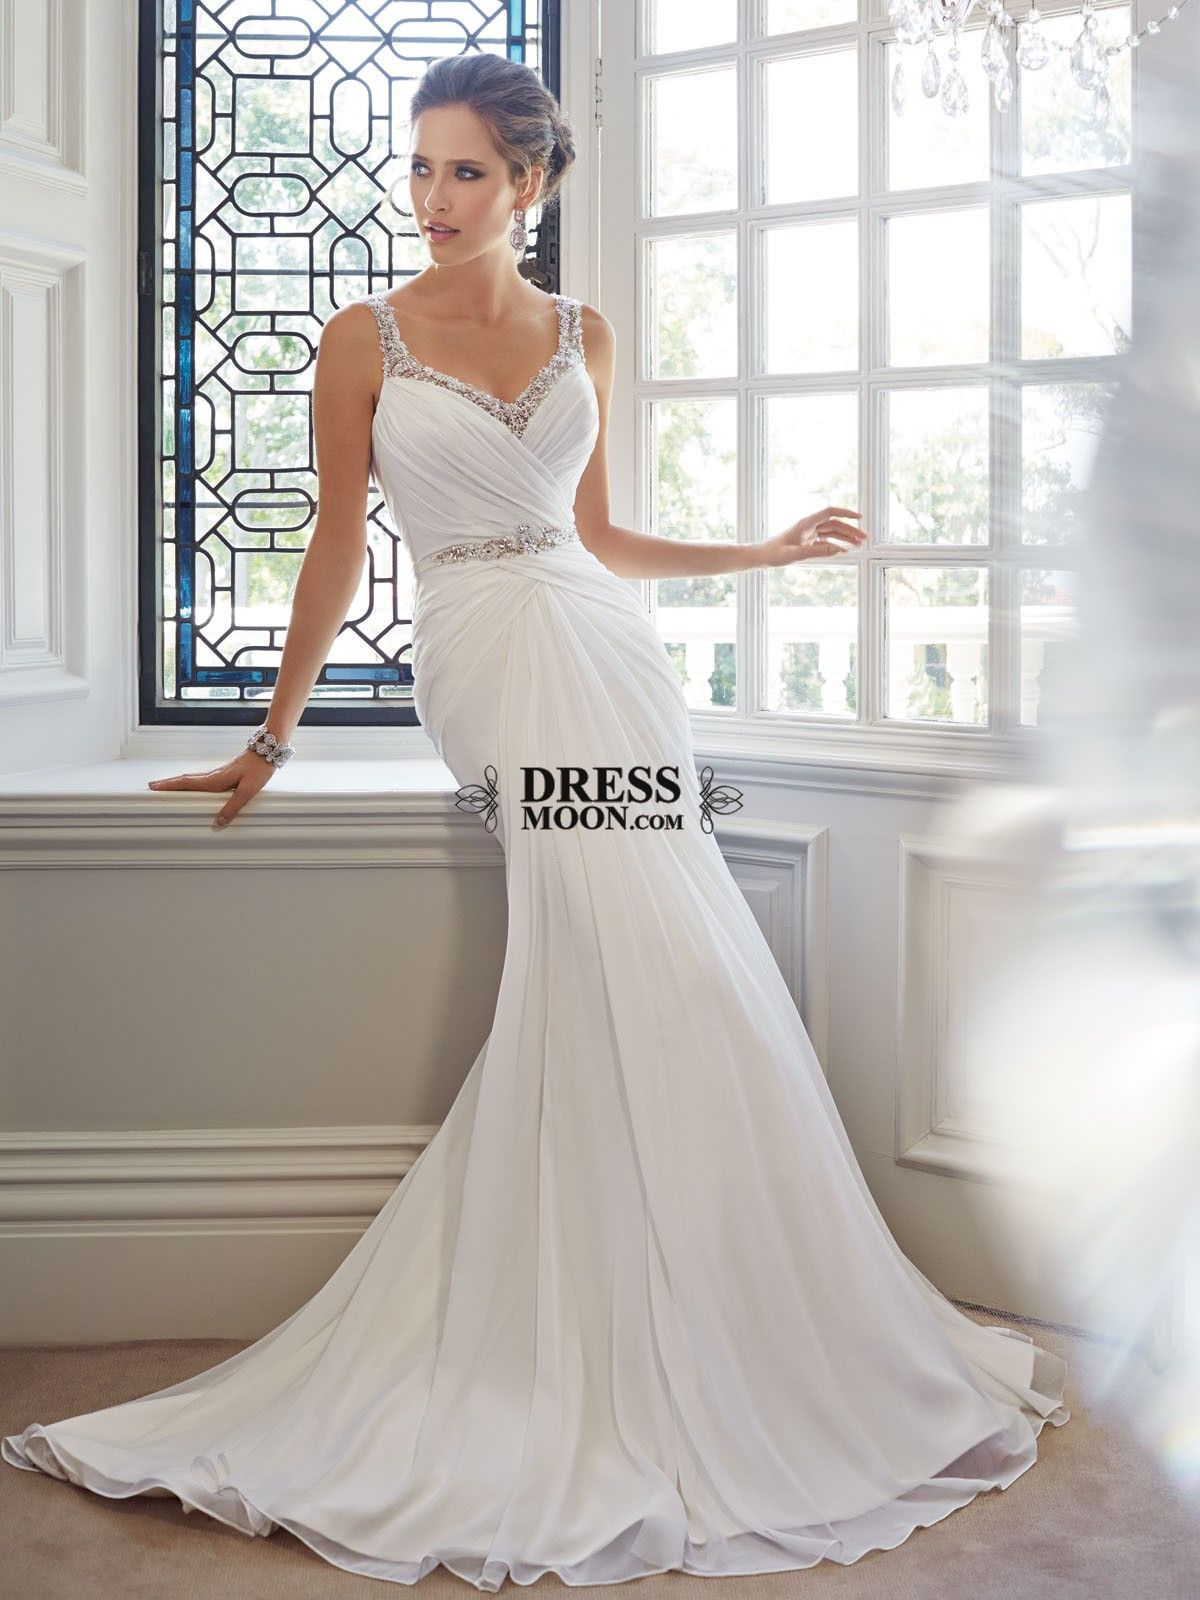 Cheap silver dresses for weddings  Wedding Dress Wedding Dresses  AMAZINGLY BEAUTIFUL WEDDING DRESS OR